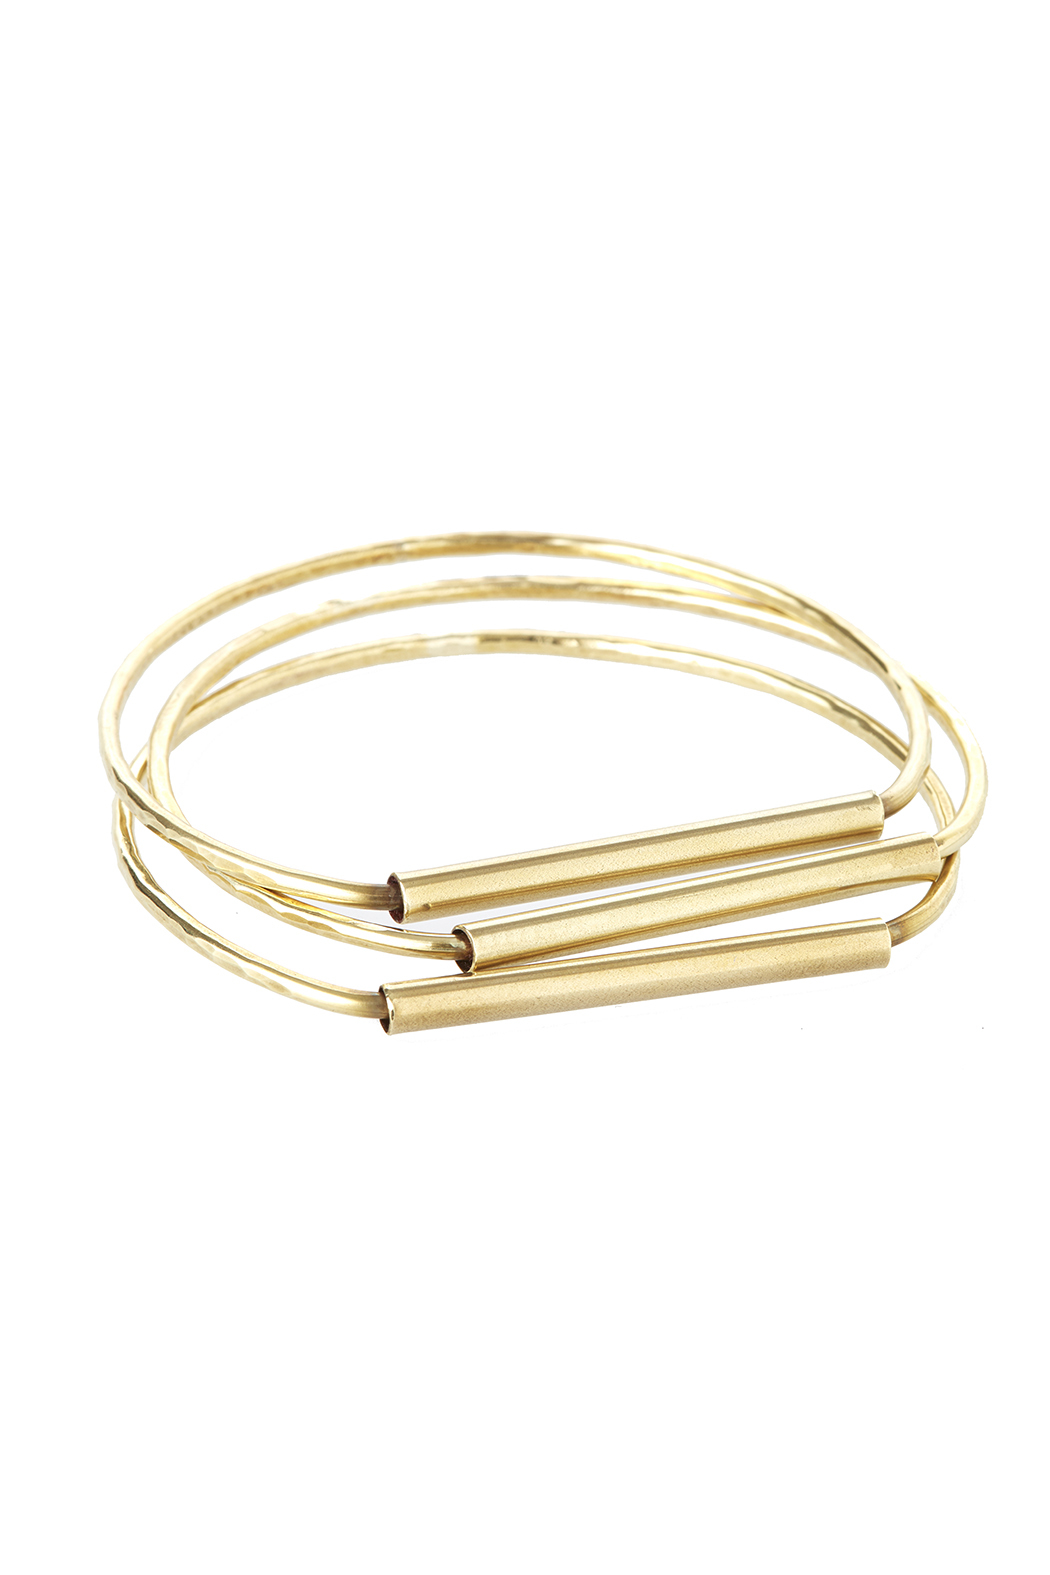 -bar-bangle-brass-033e2a8b_l.jpg